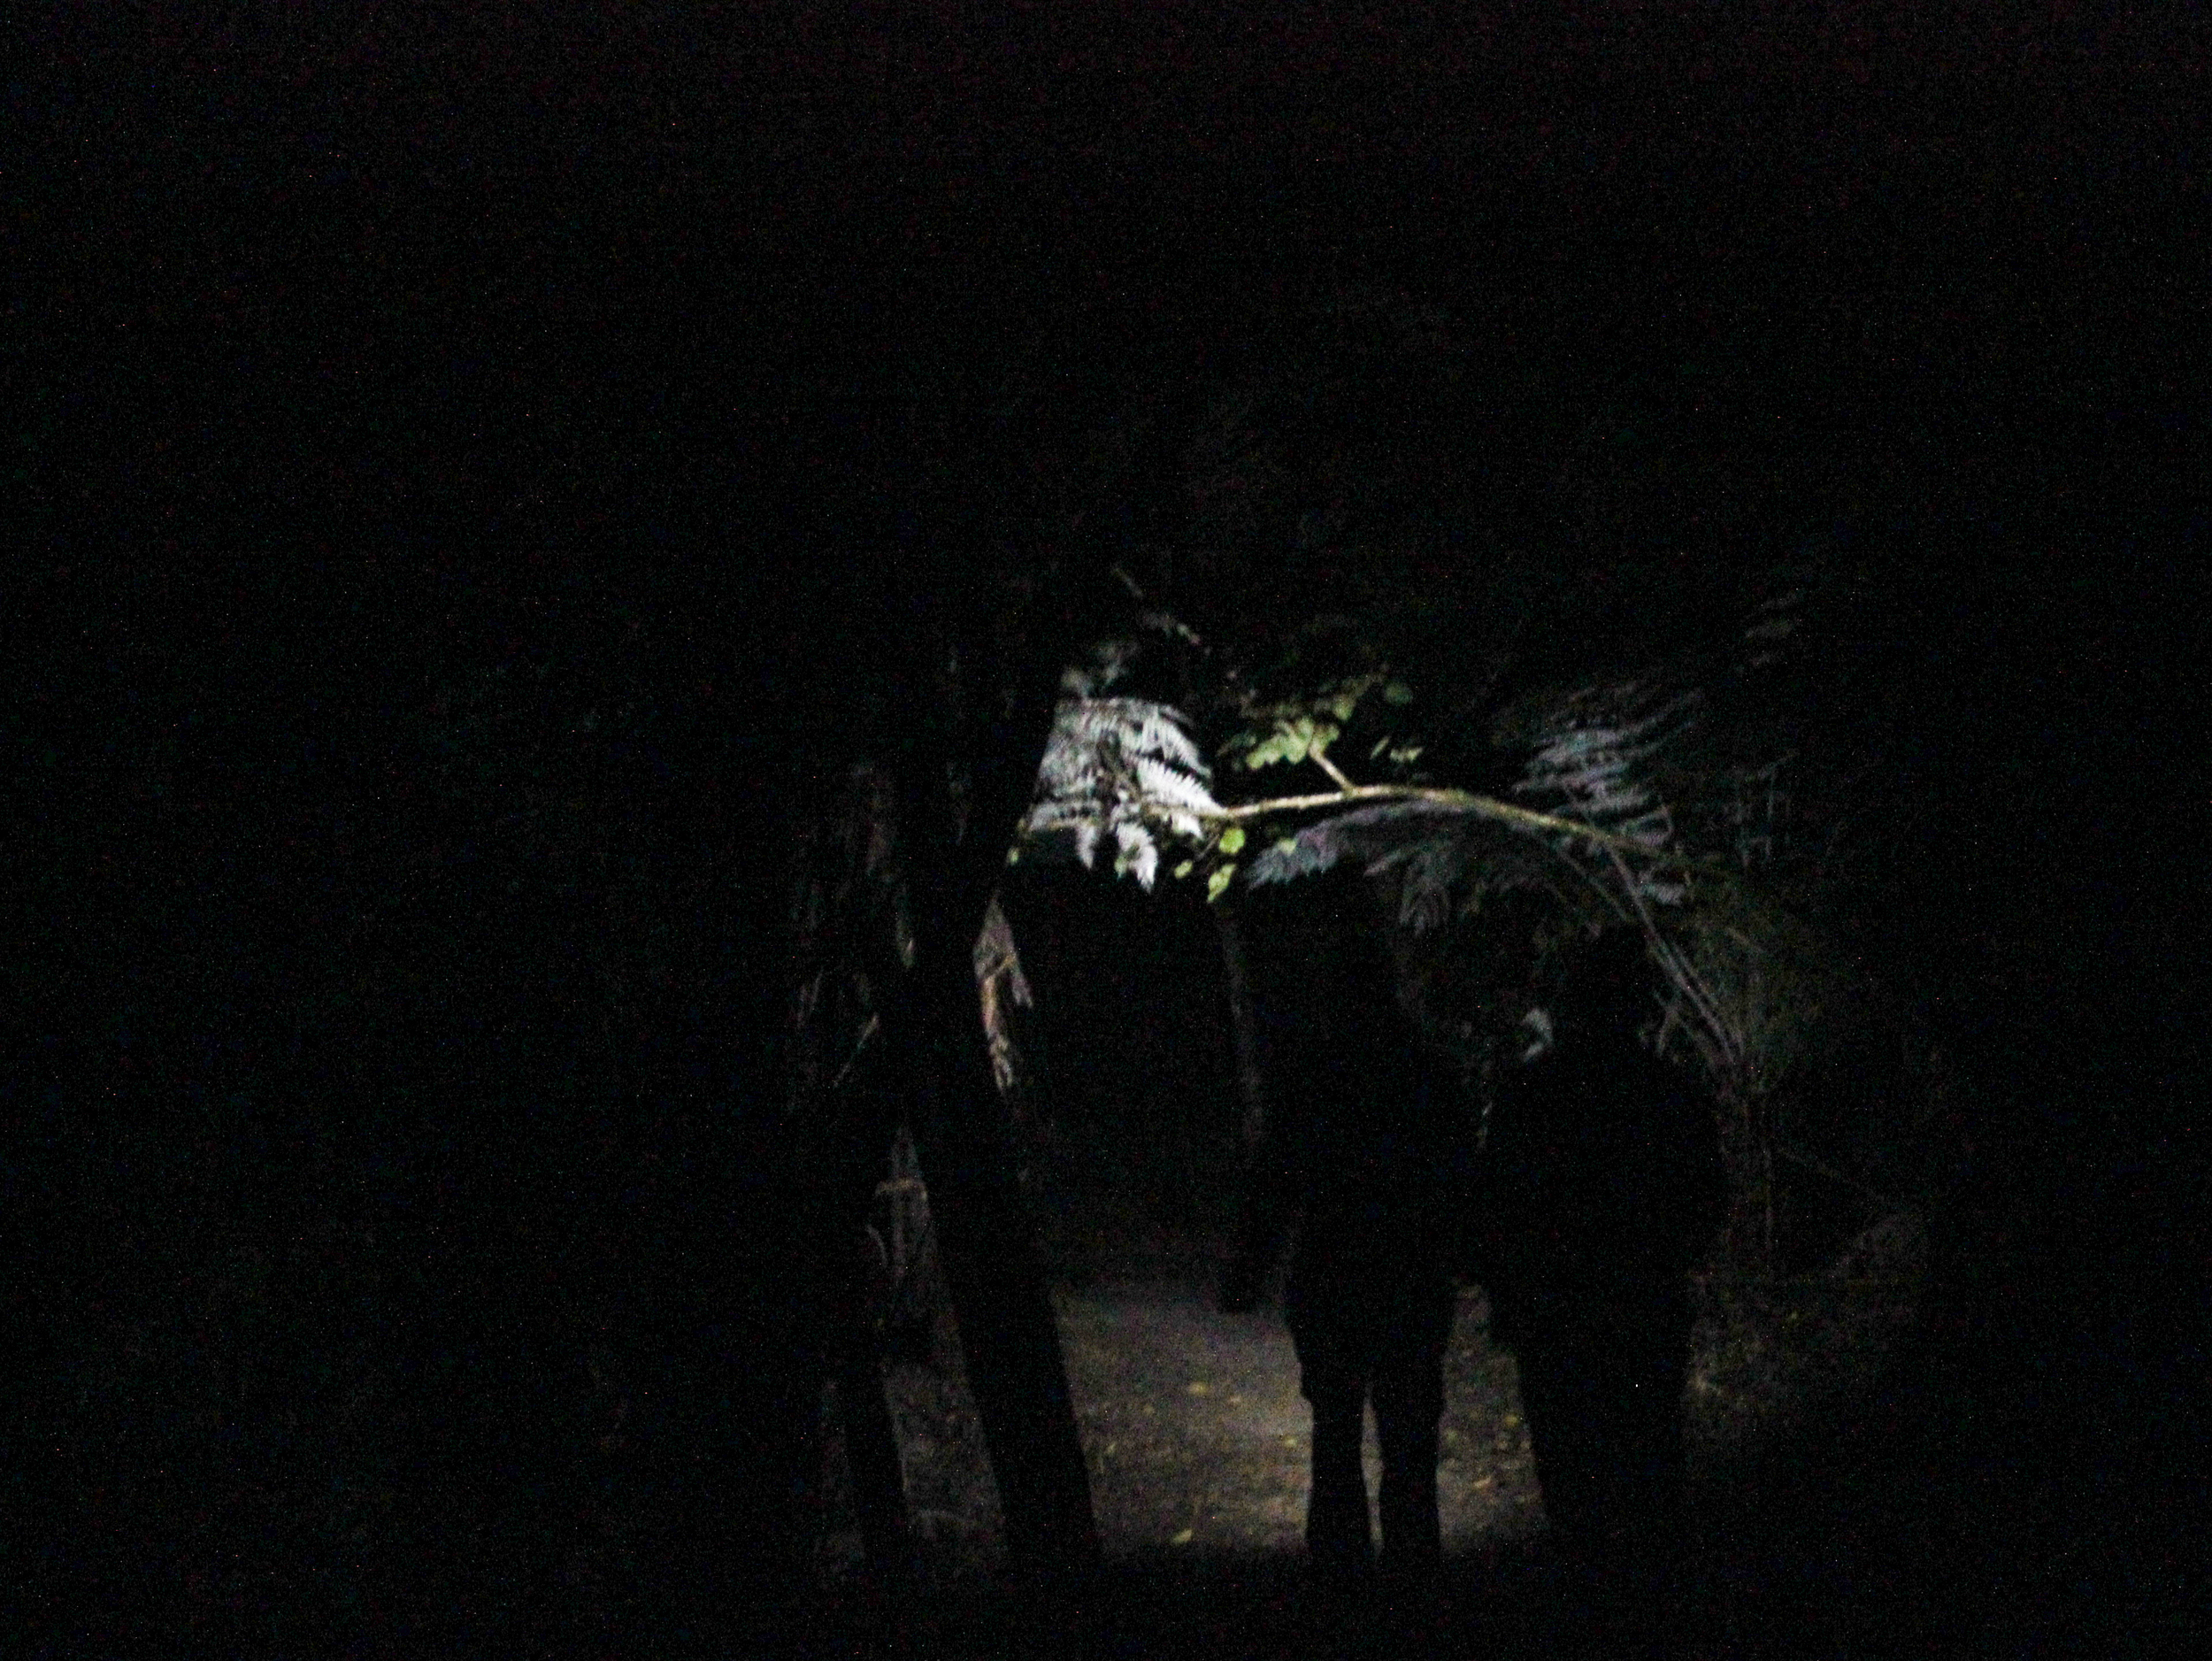 On our last night in Abel Tasman National Park, Jamie and I venture into the dark with only flashlights to guide us to search for glow worms.